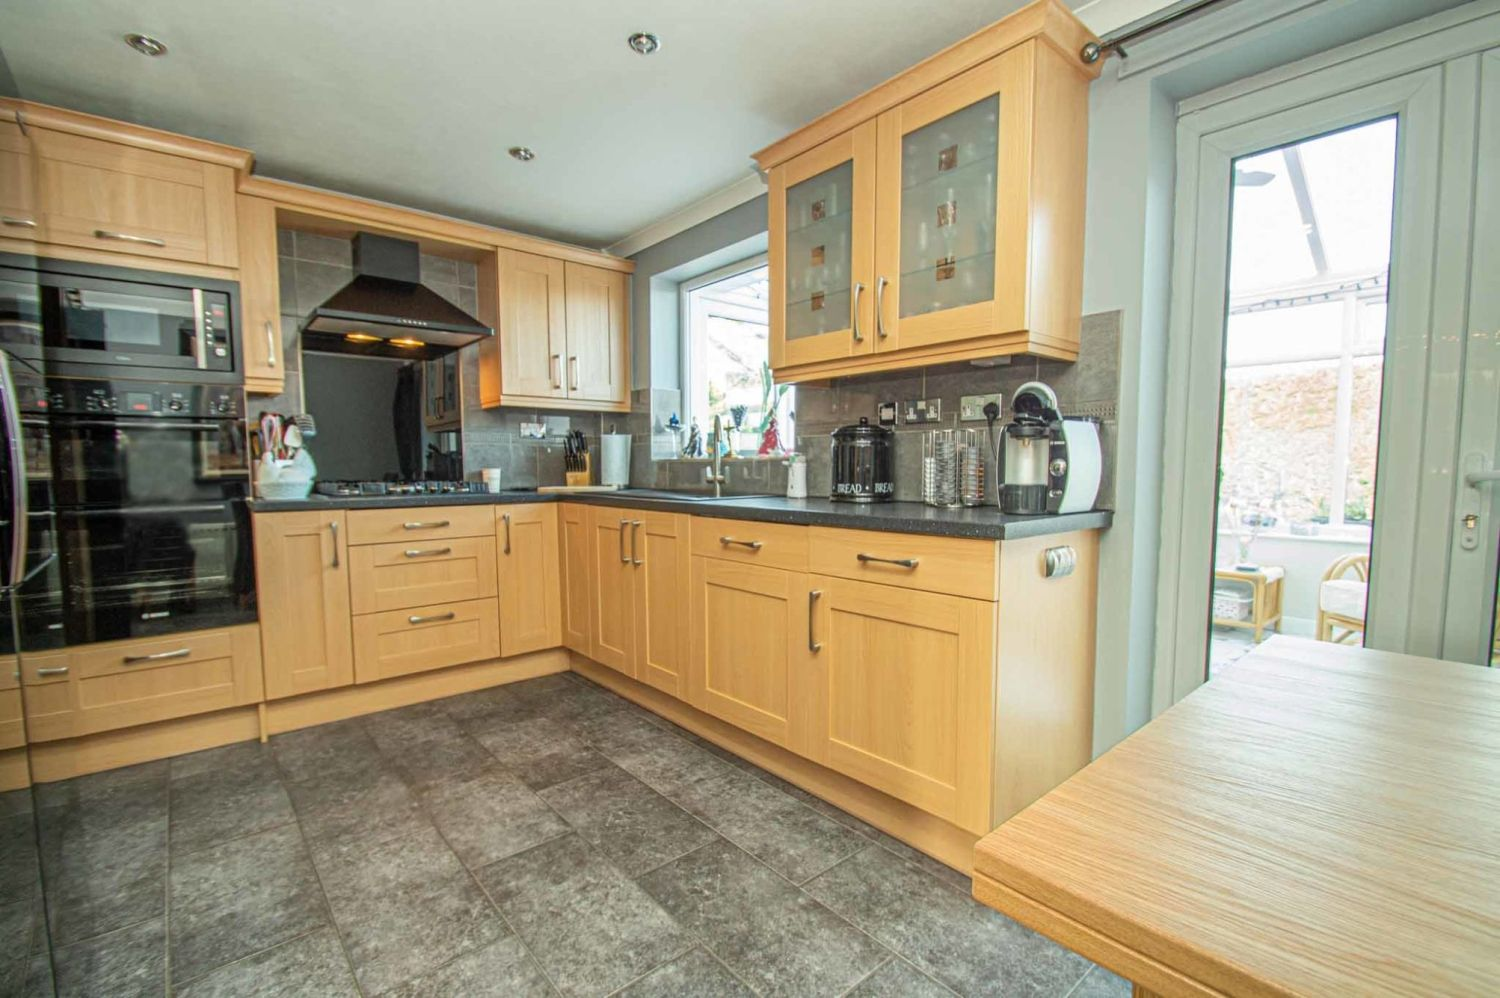 3 bed detached for sale in Broomehill Close, Brierley Hill 4